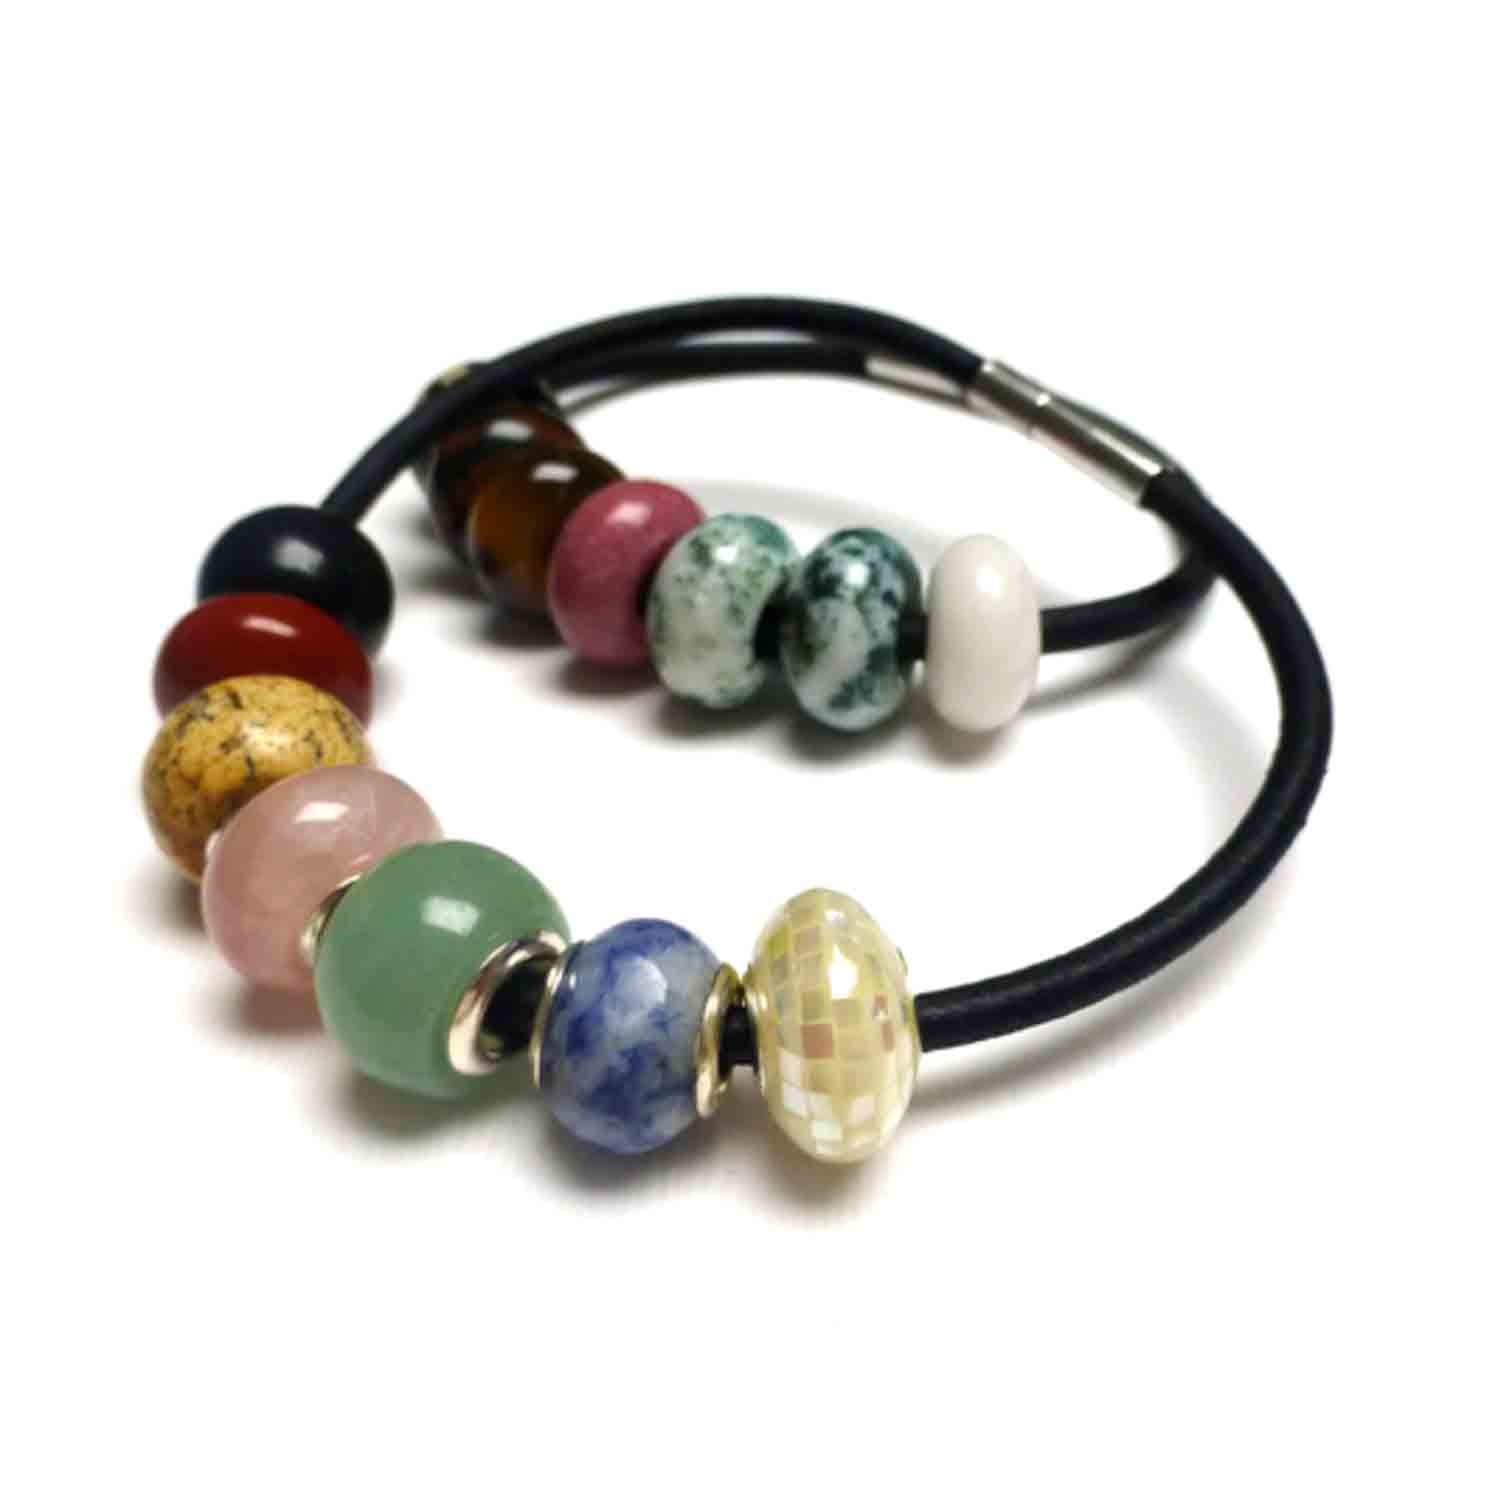 LEATHER SEVEN CHAKRAS MEDITATION BRACELET